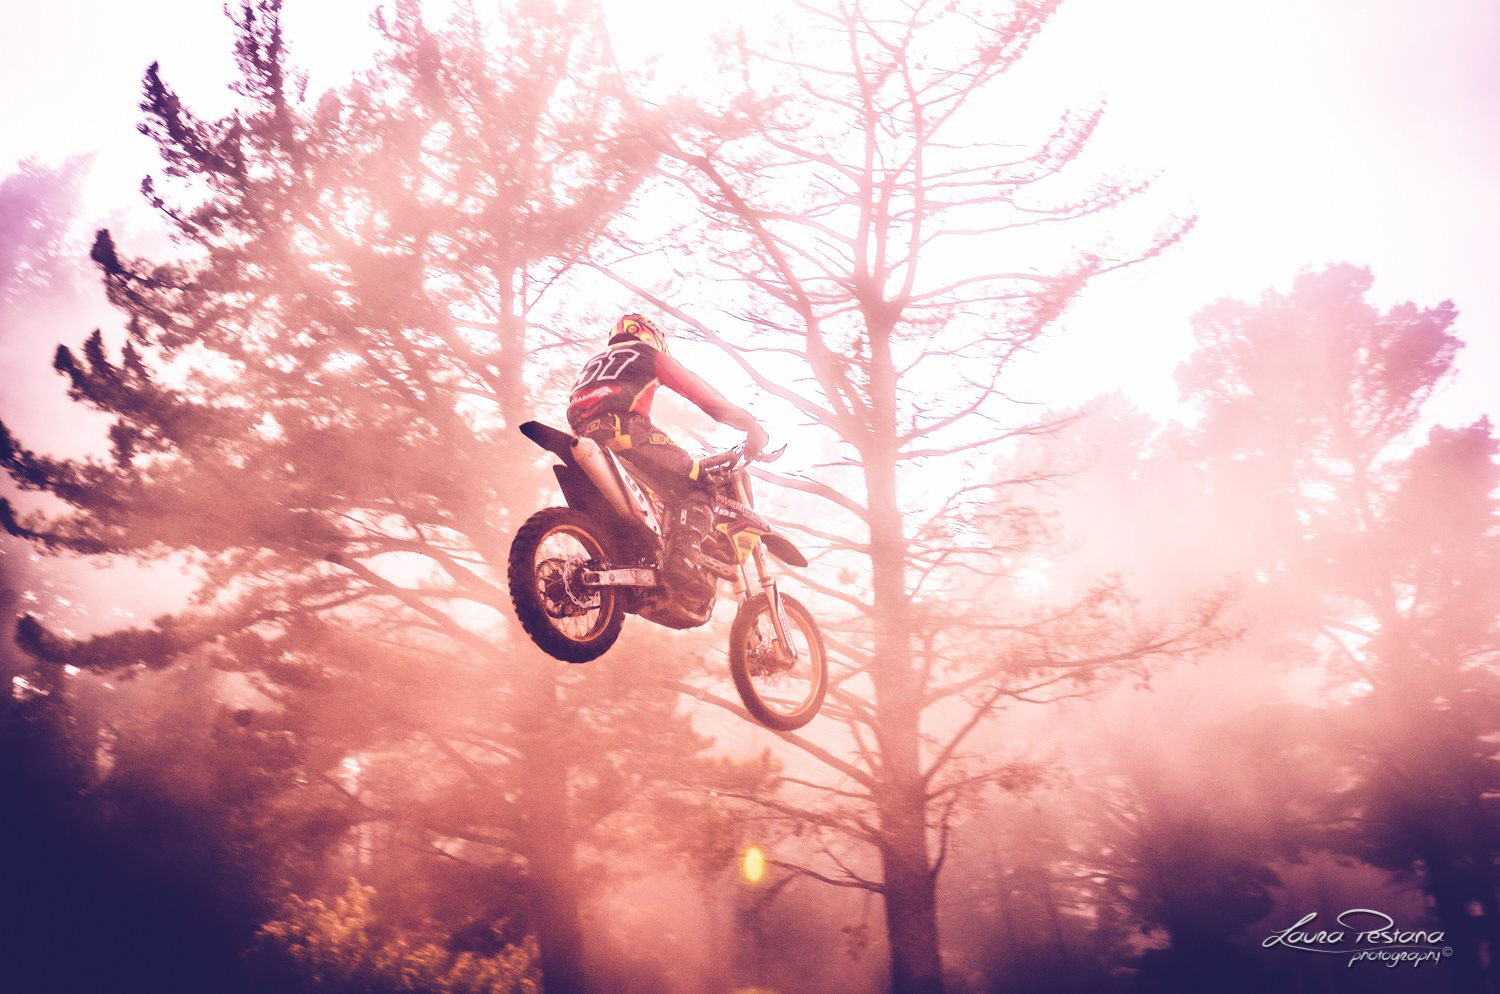 A photo of a rider jumping high with his dirt bike